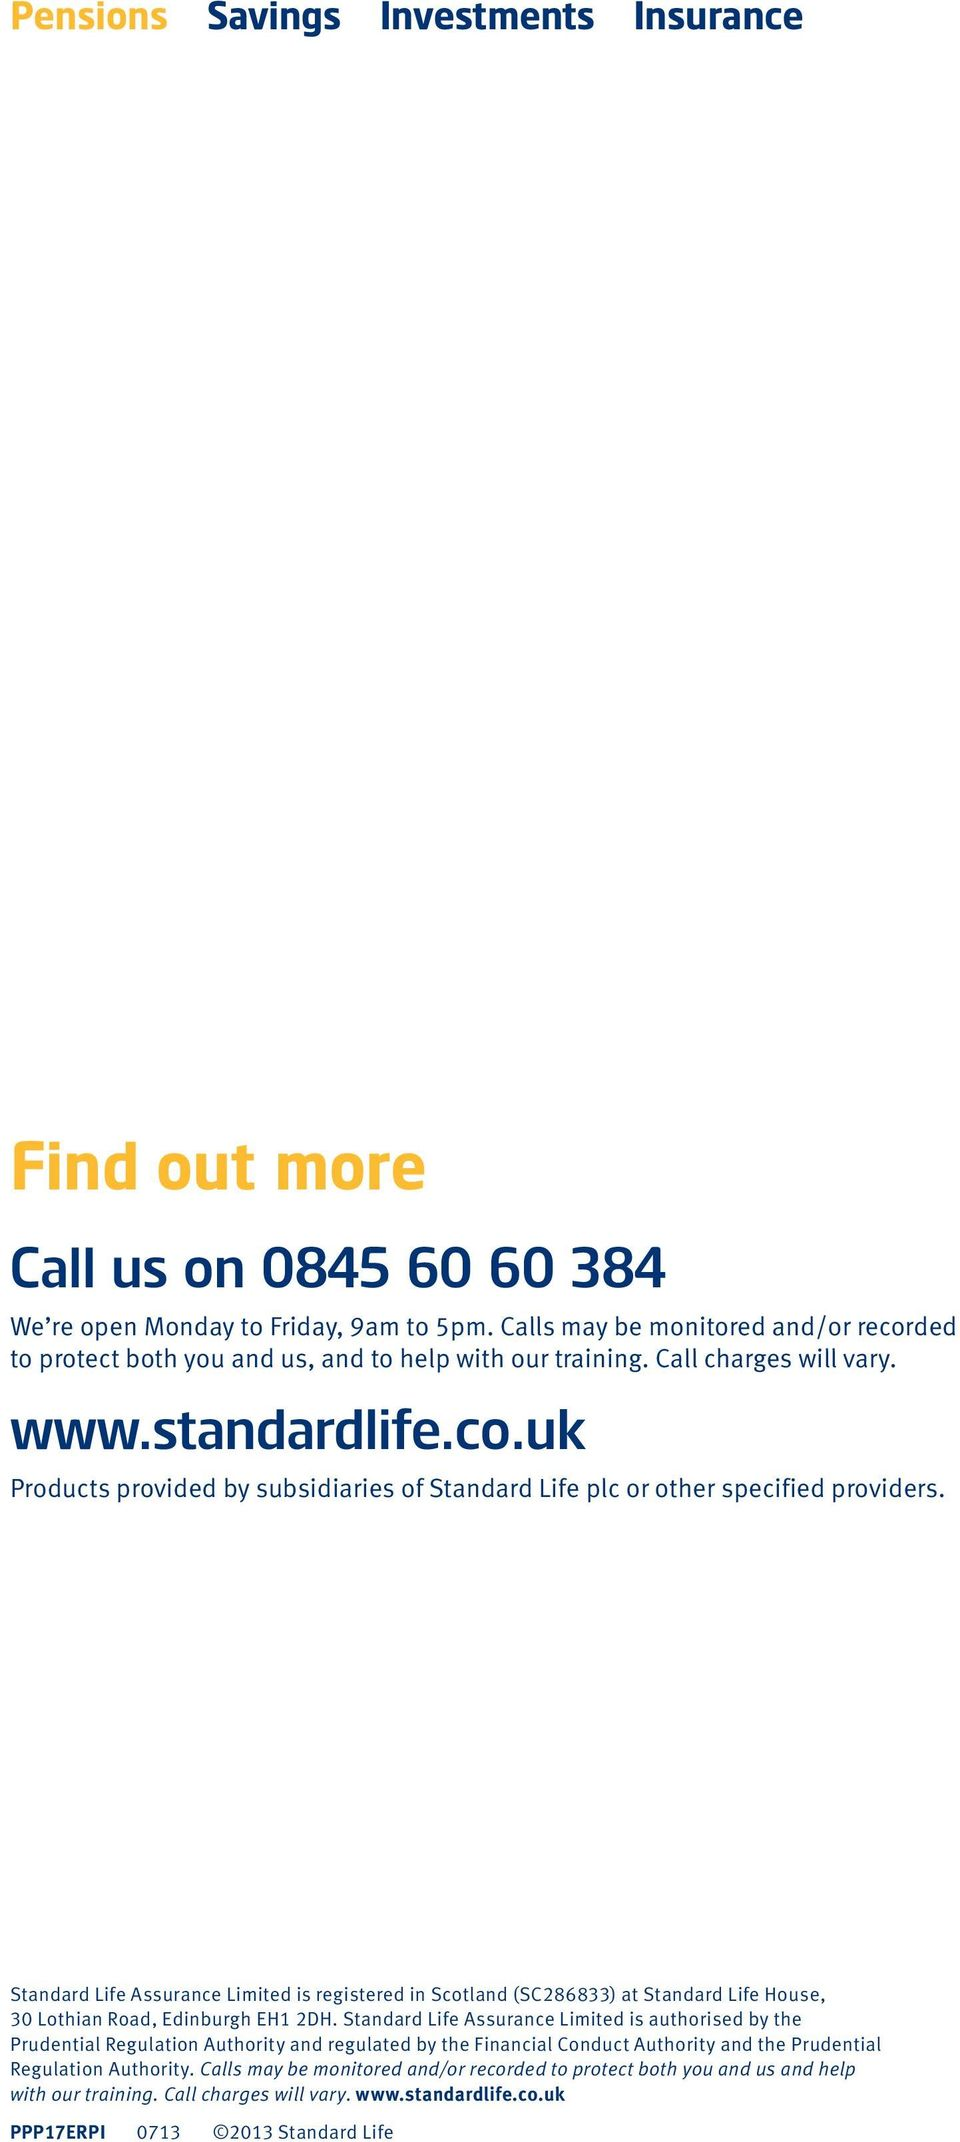 Standard Life Assurance Limited is registered in Scotland (SC286833) at Standard Life House, 30 Lothian Road, Edinburgh EH1 2DH.